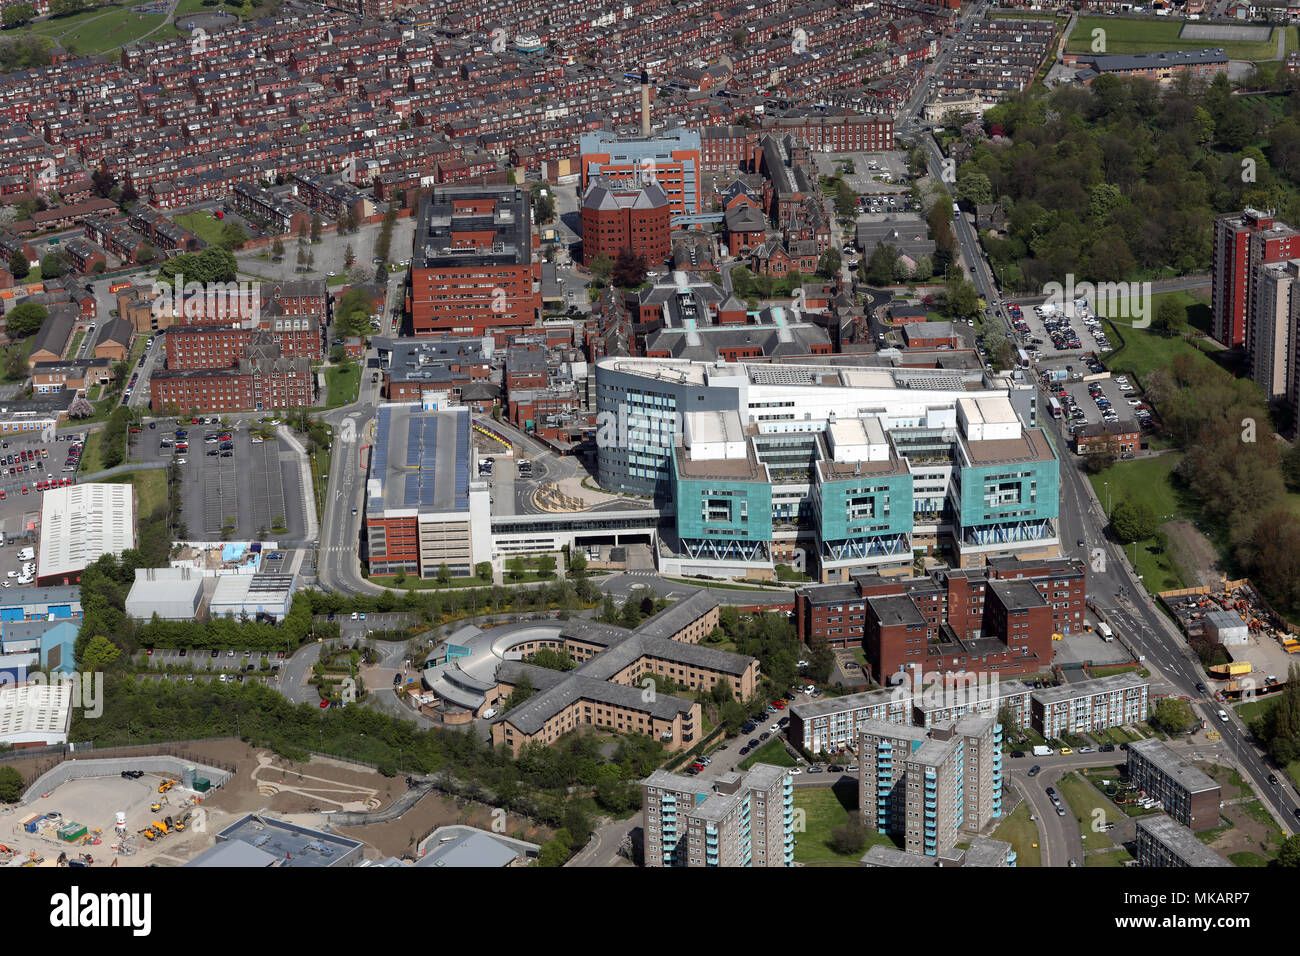 aerial view of St James's University Hospital, Leeds - Stock Image